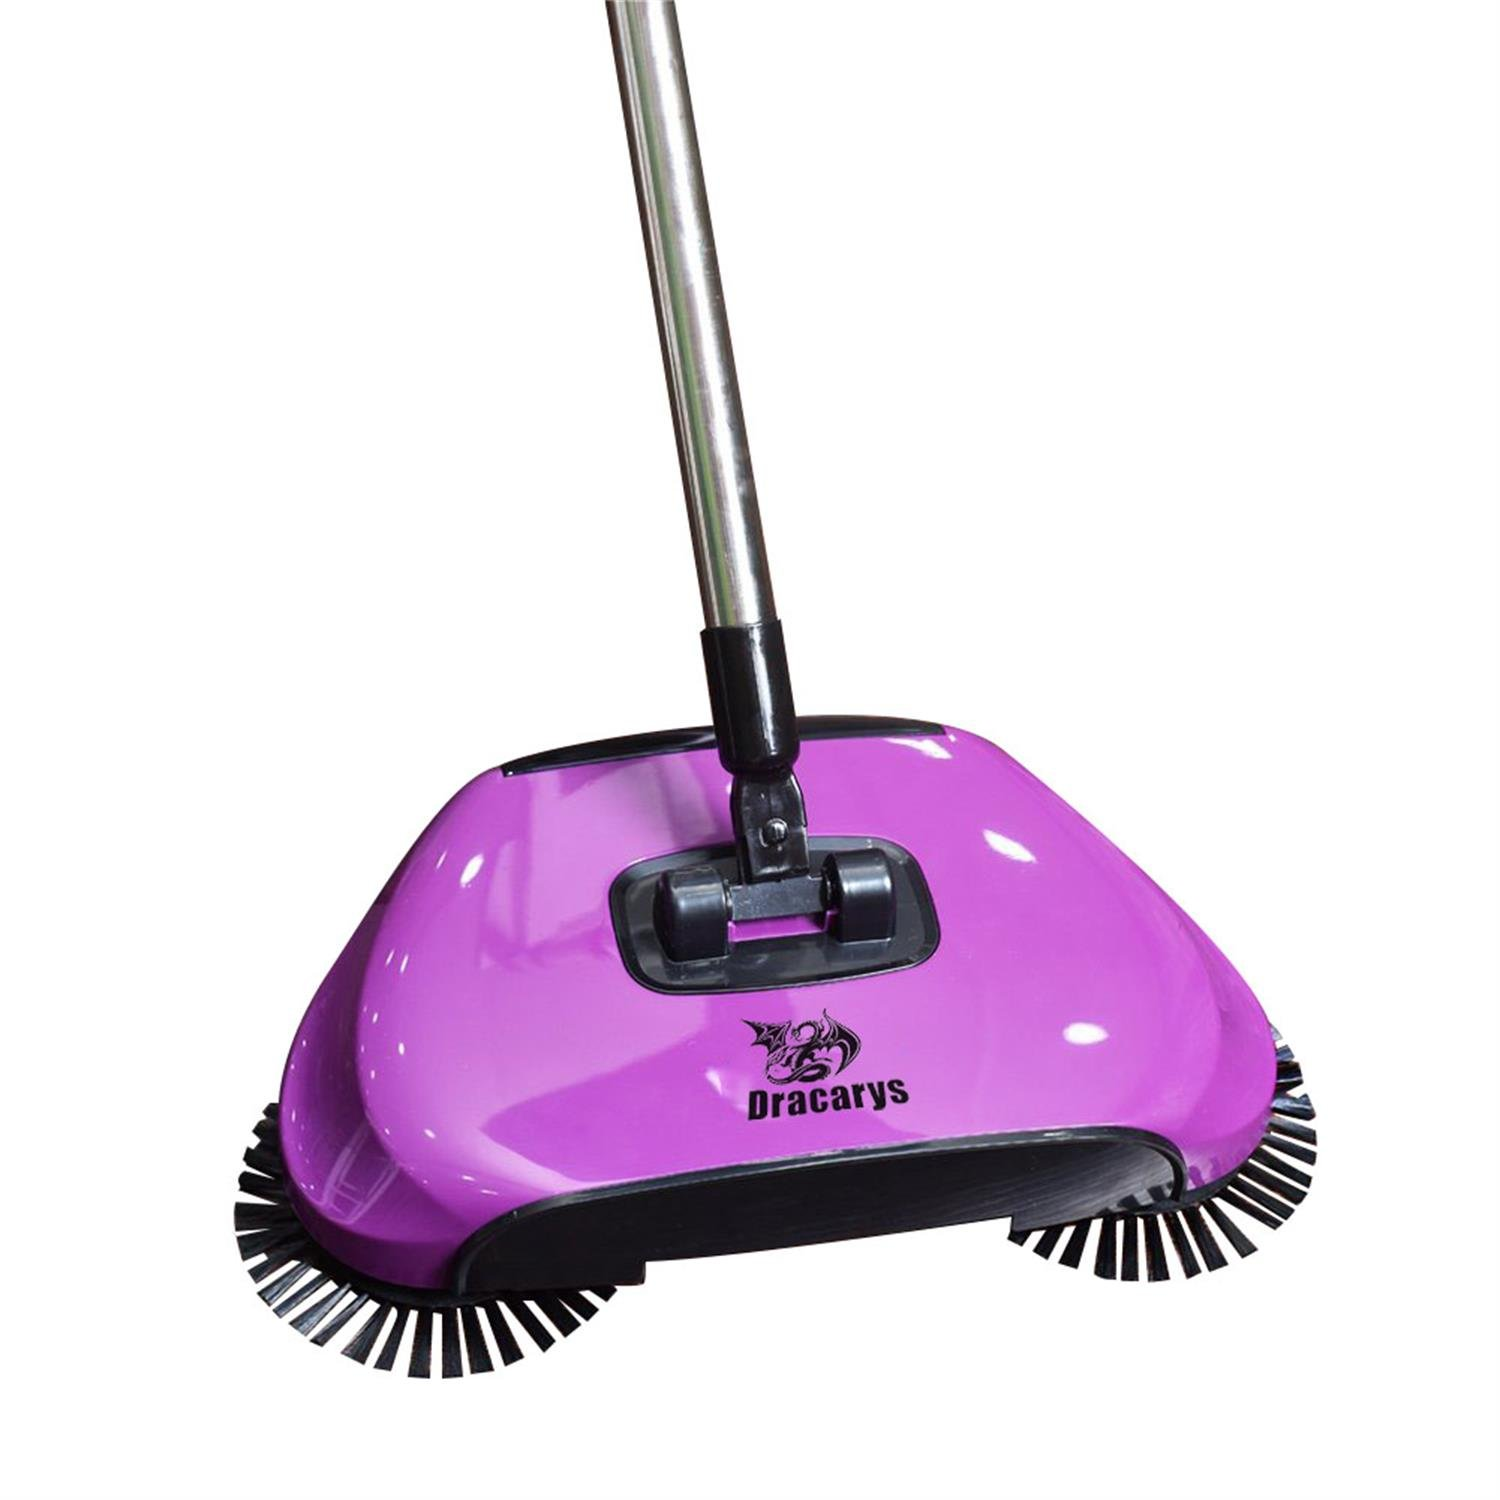 Dragon Flame Lazy 3 in 1 Household Cleaning Hand Push Automatic Sweeper Broom - Including Broom & Dustpan & Trash Bin - Cleaner Without Electricity Environmental (purple)